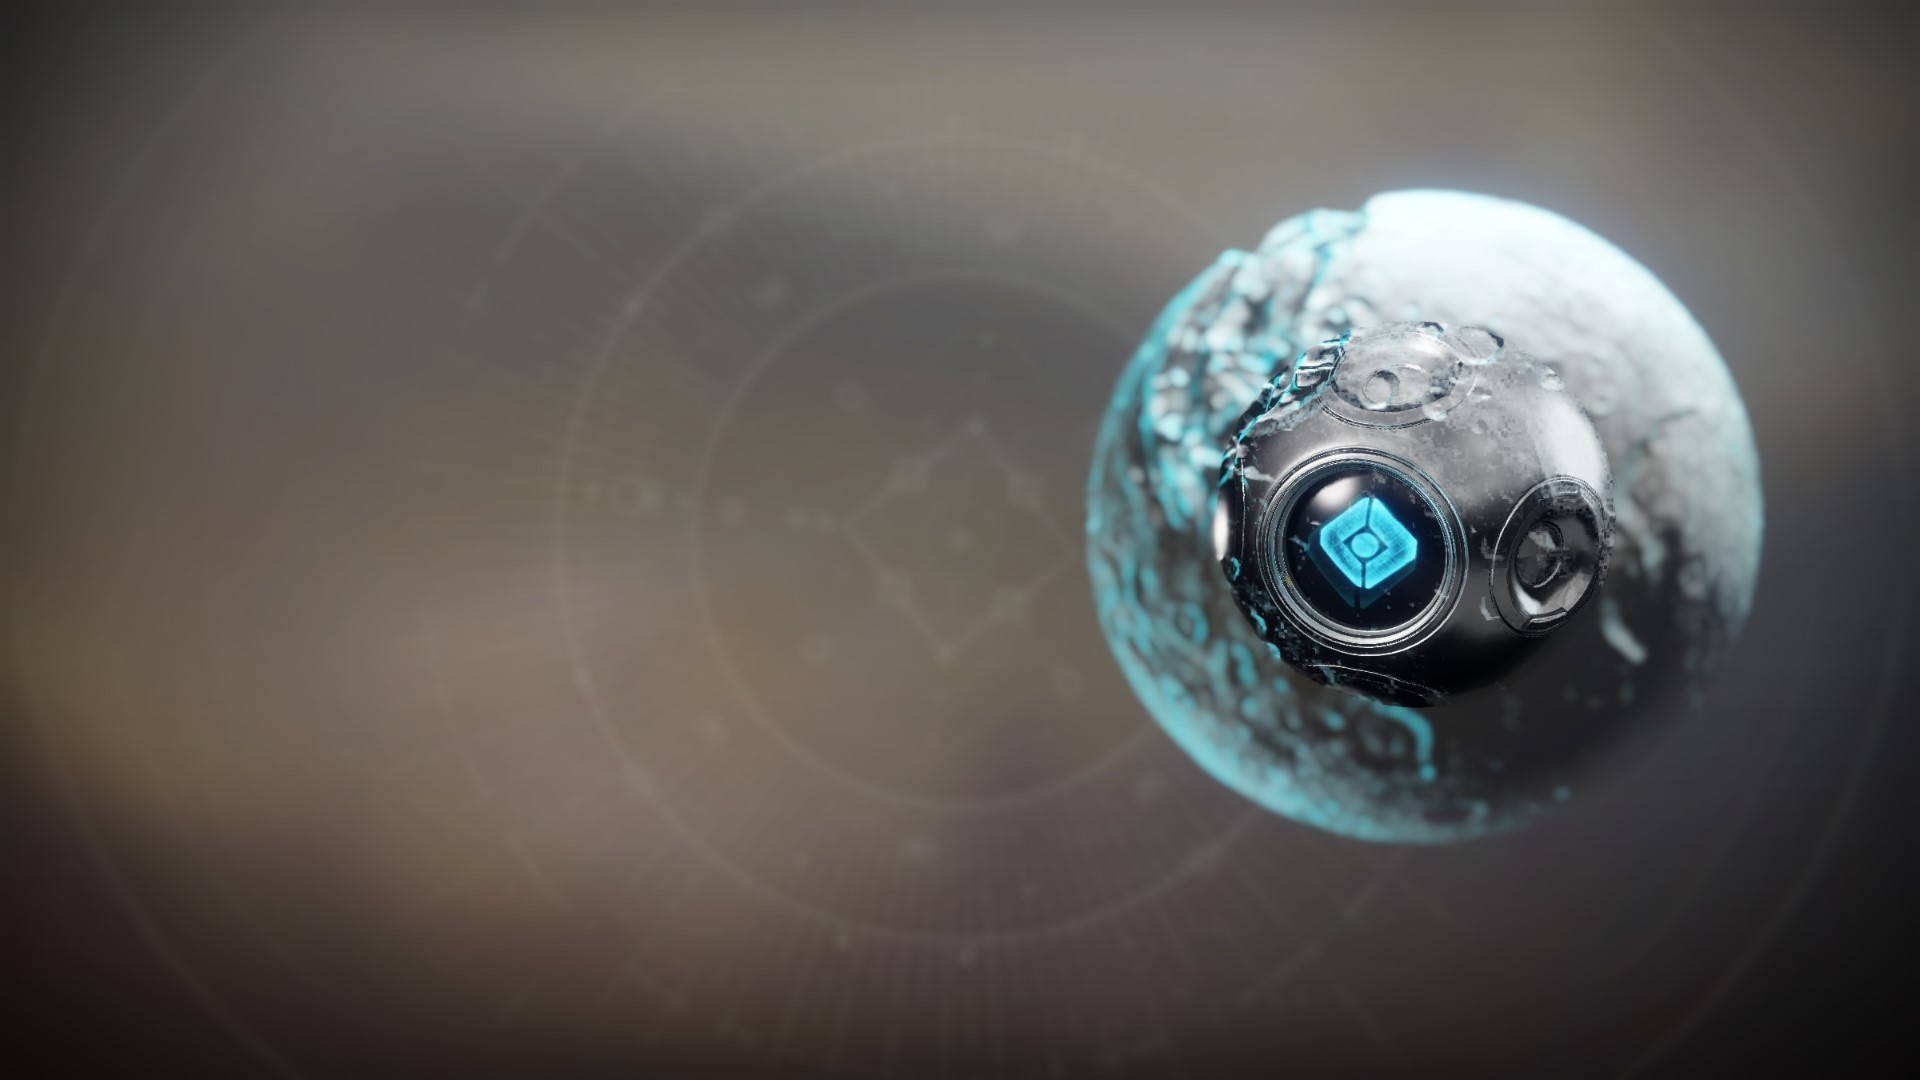 An in-game render of the Lunar Shell.